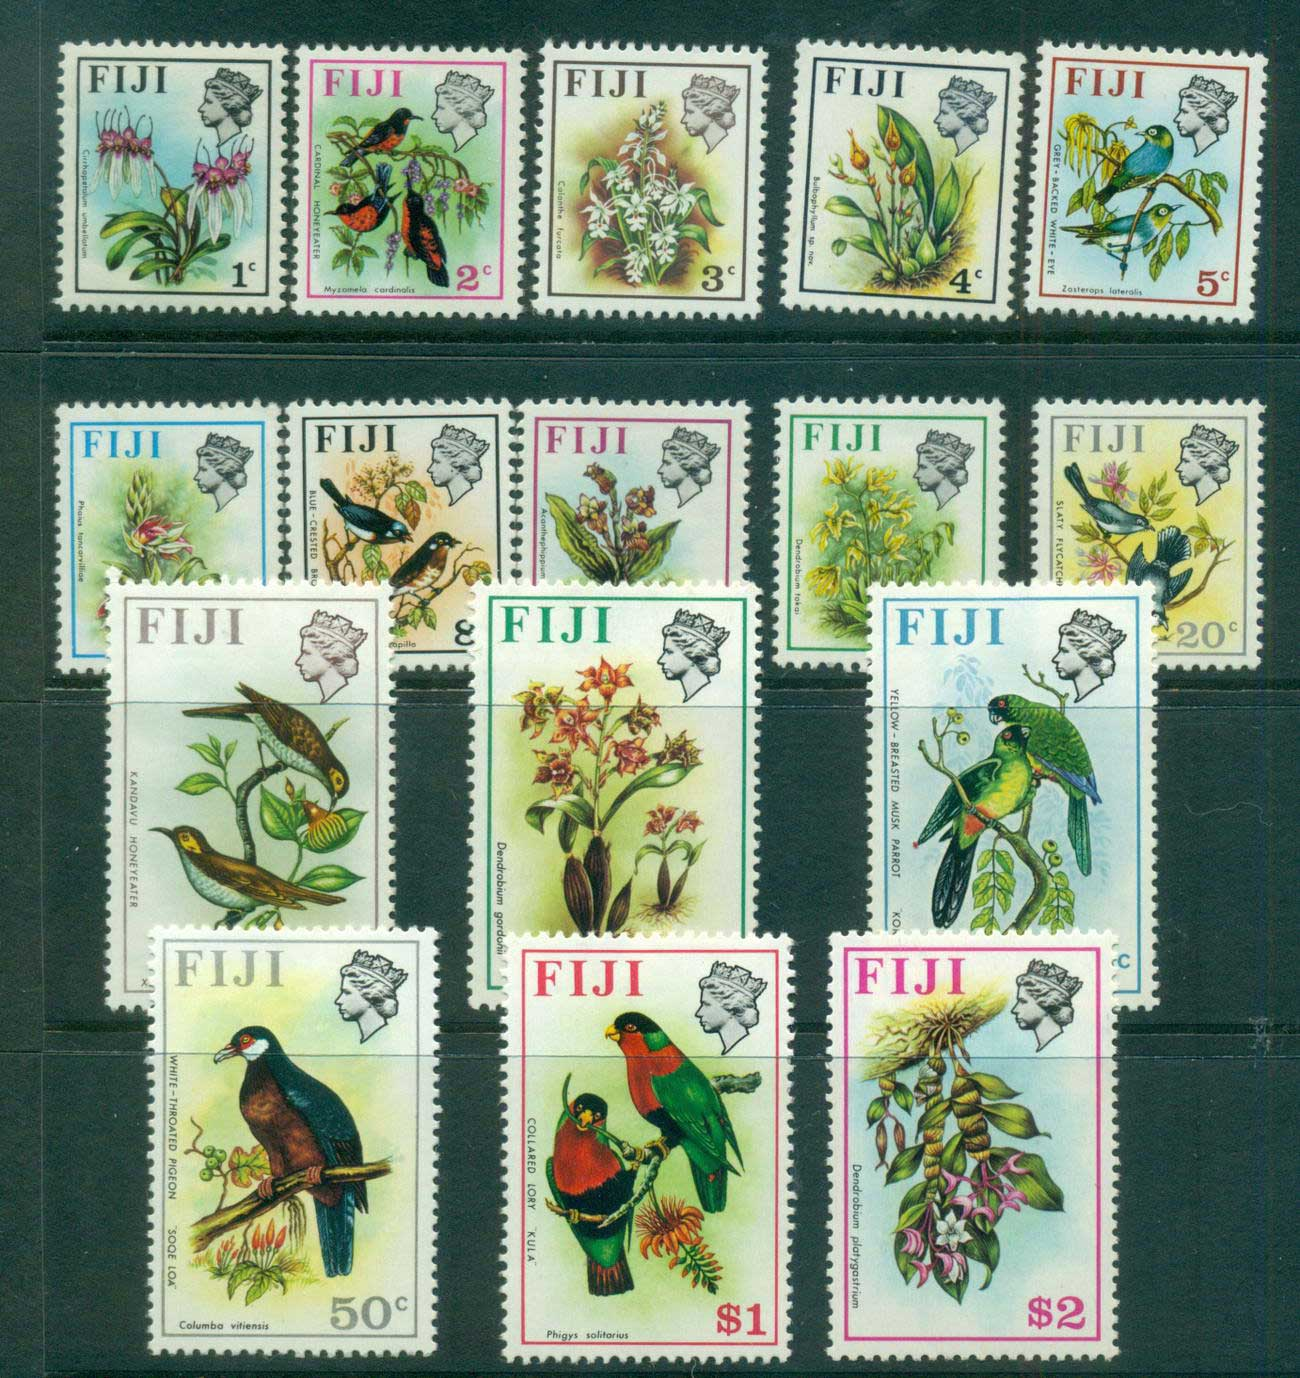 Fiji 1971-72 Birds & Flowers (16) Wmk upright MLH lot54312